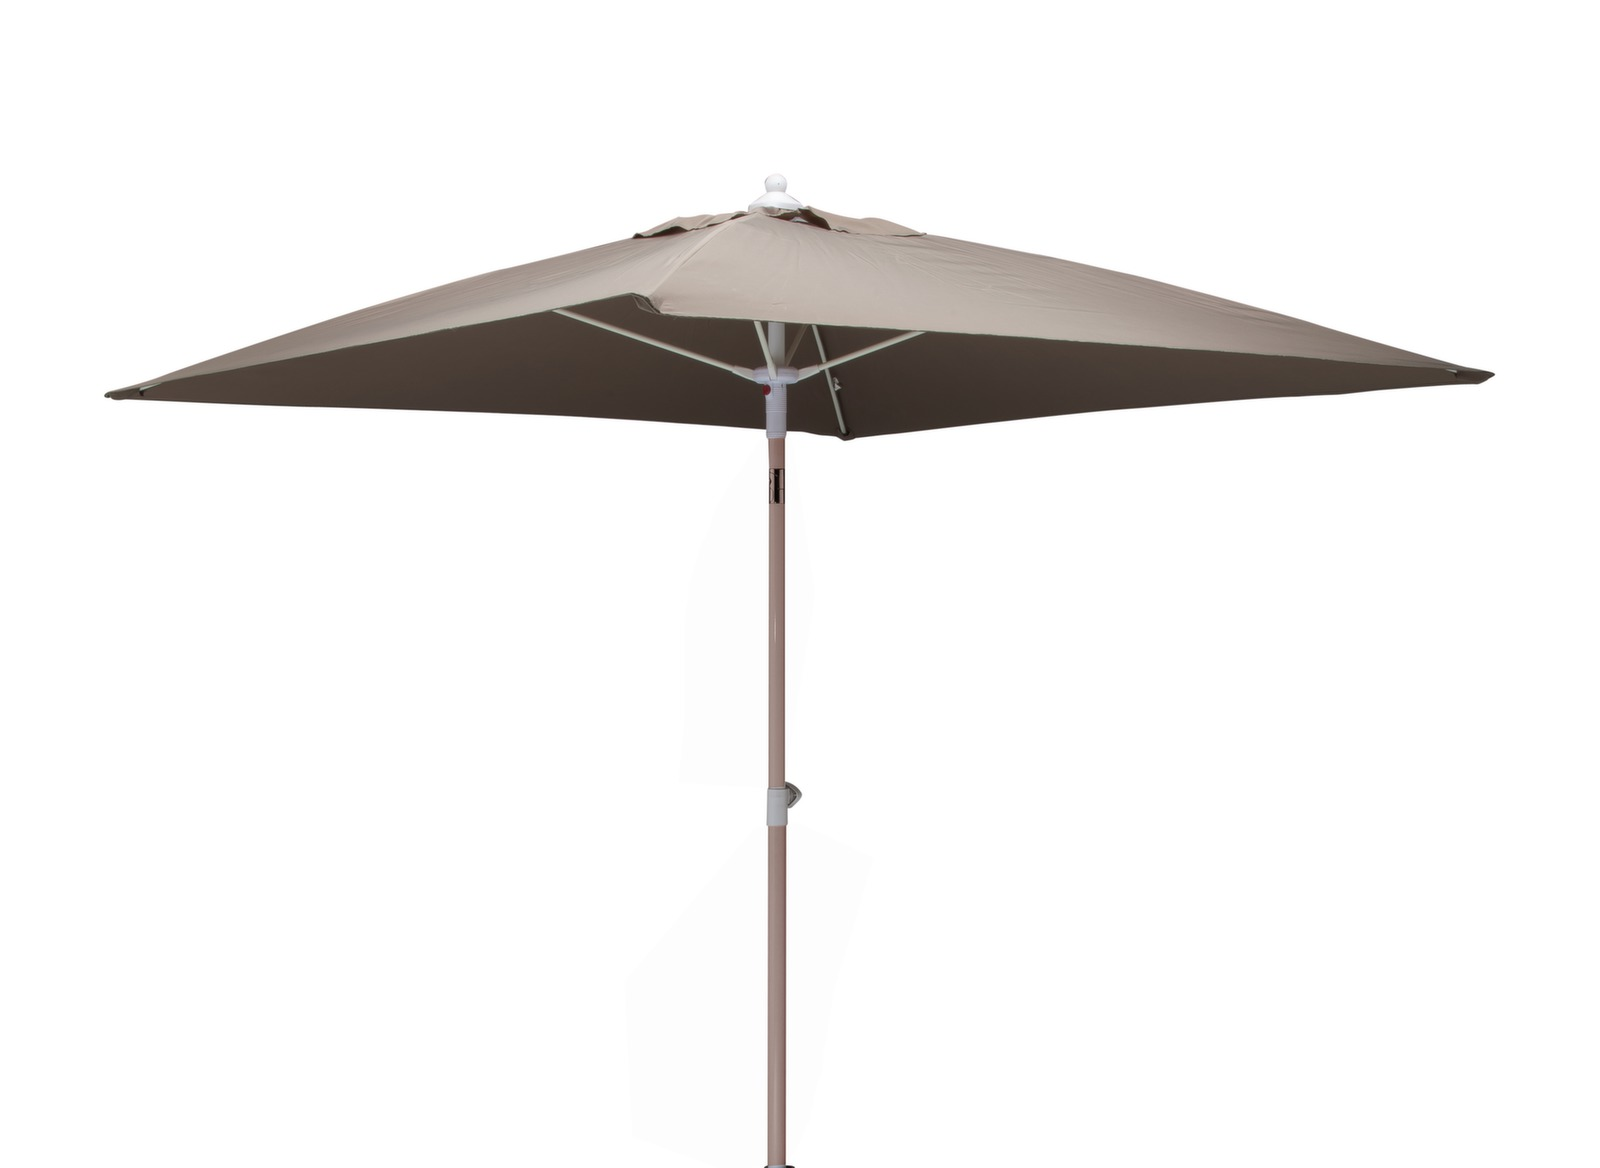 parasol 2x2 taupe parasol droit carr rond ou rectangle mobilier jardin proloisirs. Black Bedroom Furniture Sets. Home Design Ideas